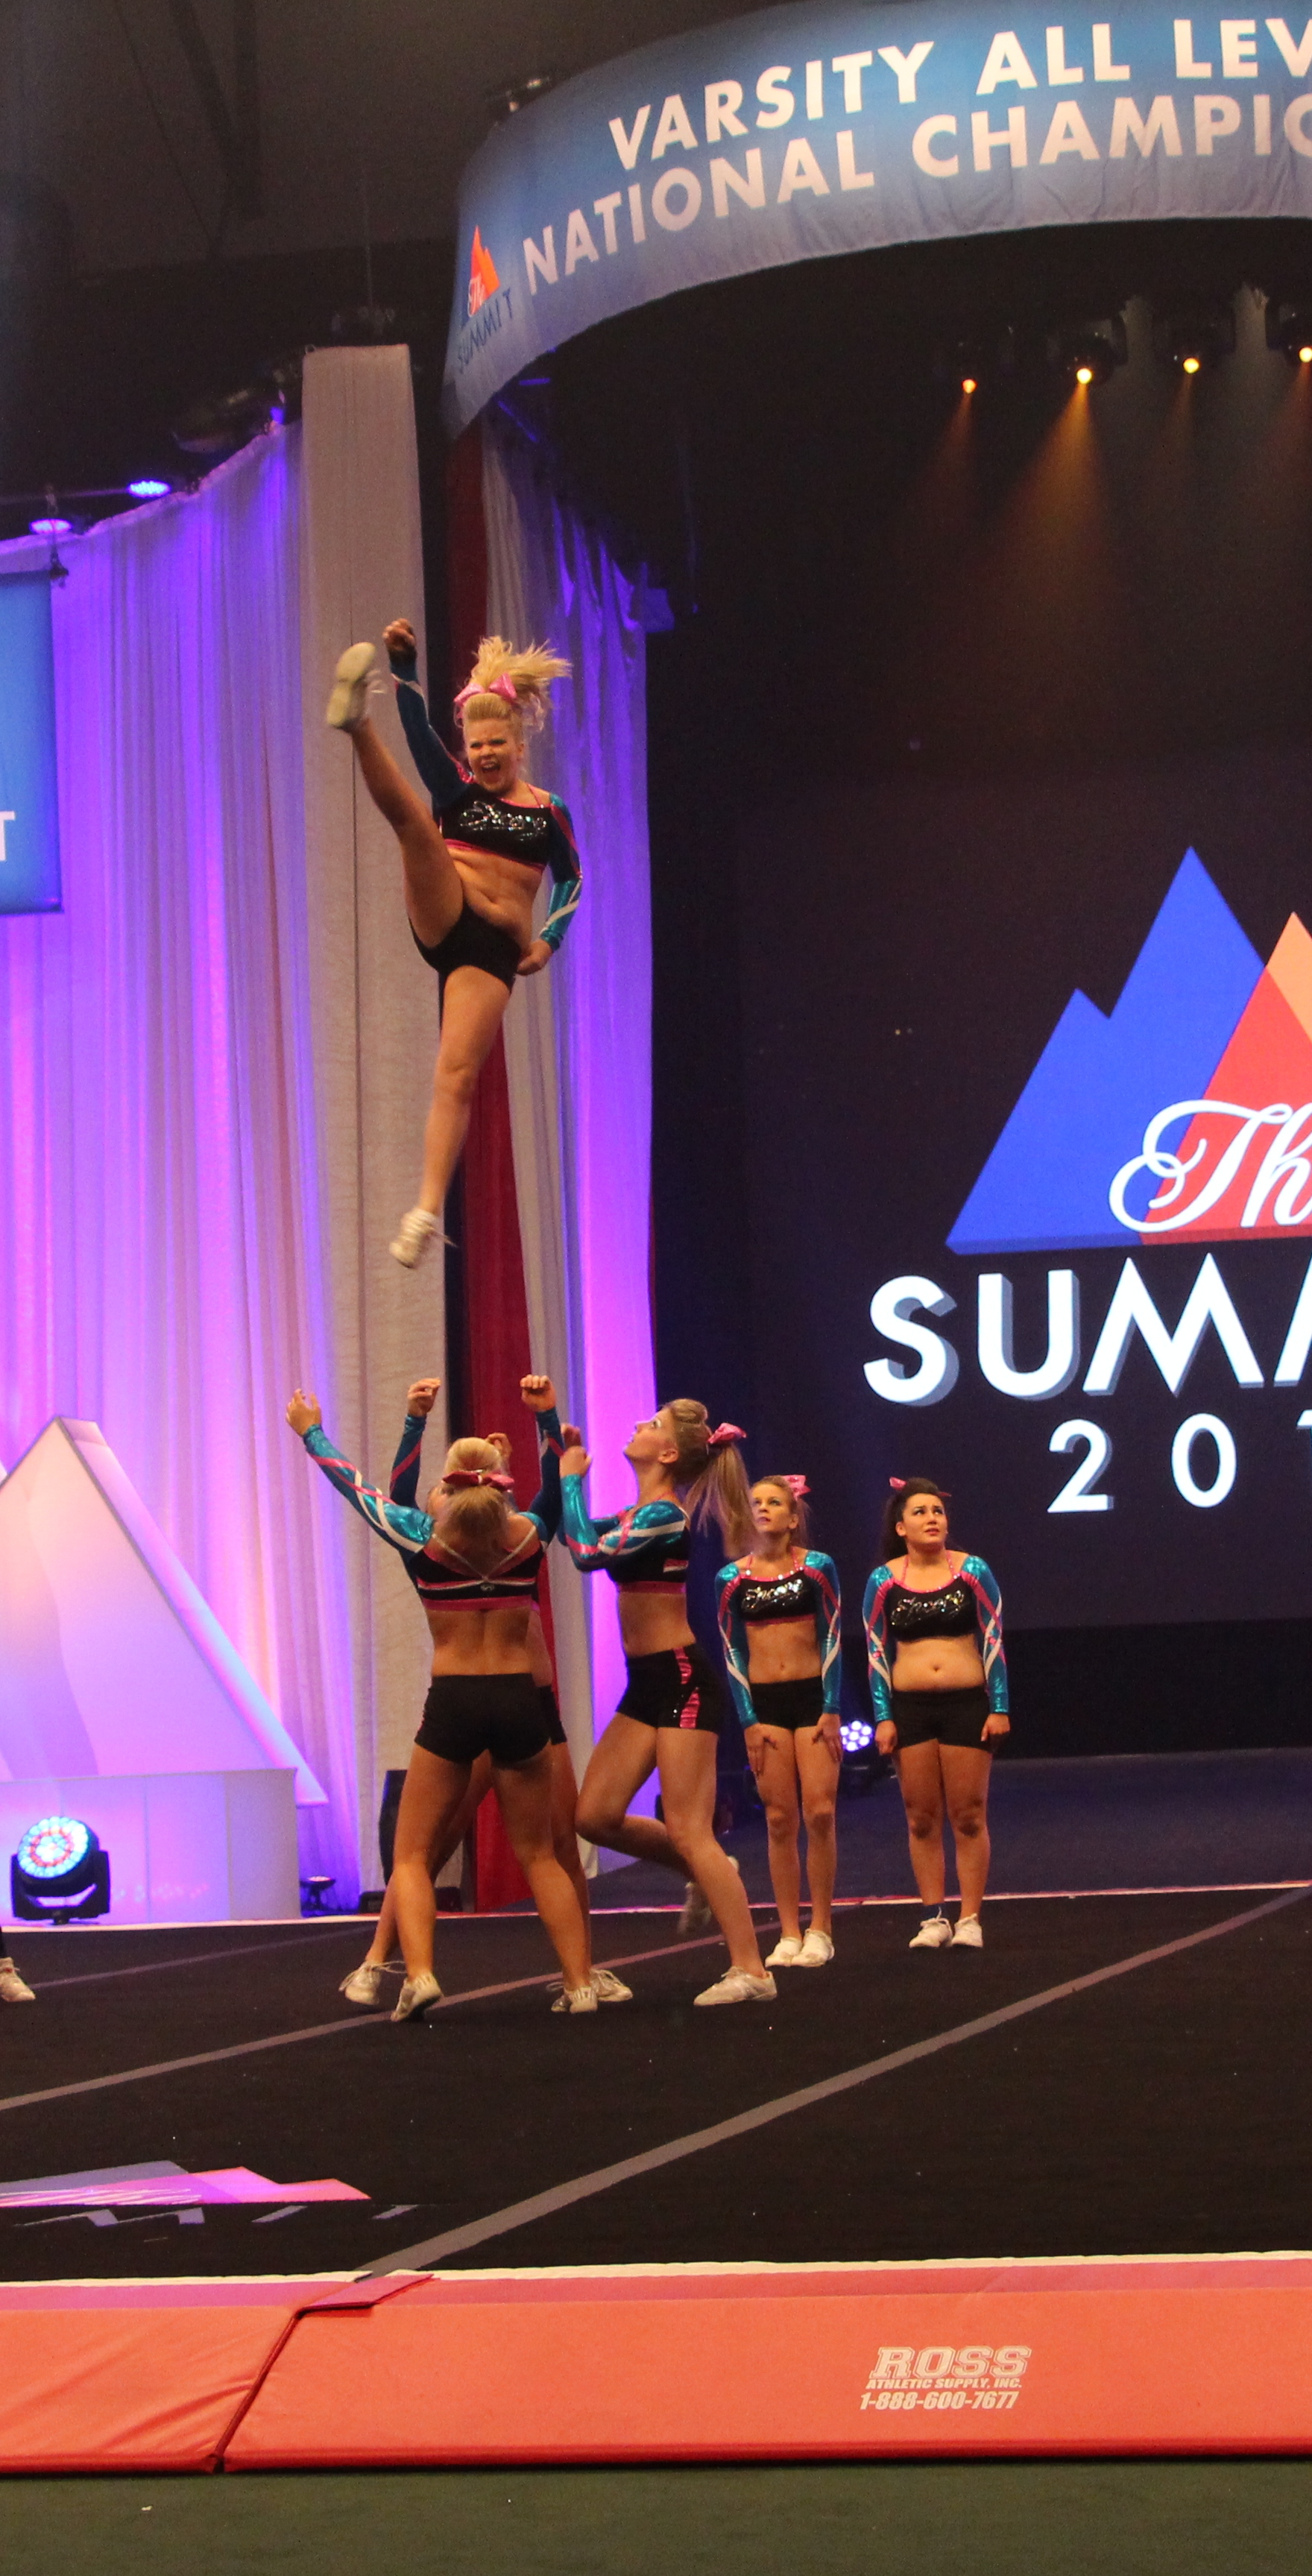 SUMMIT KICK FULL